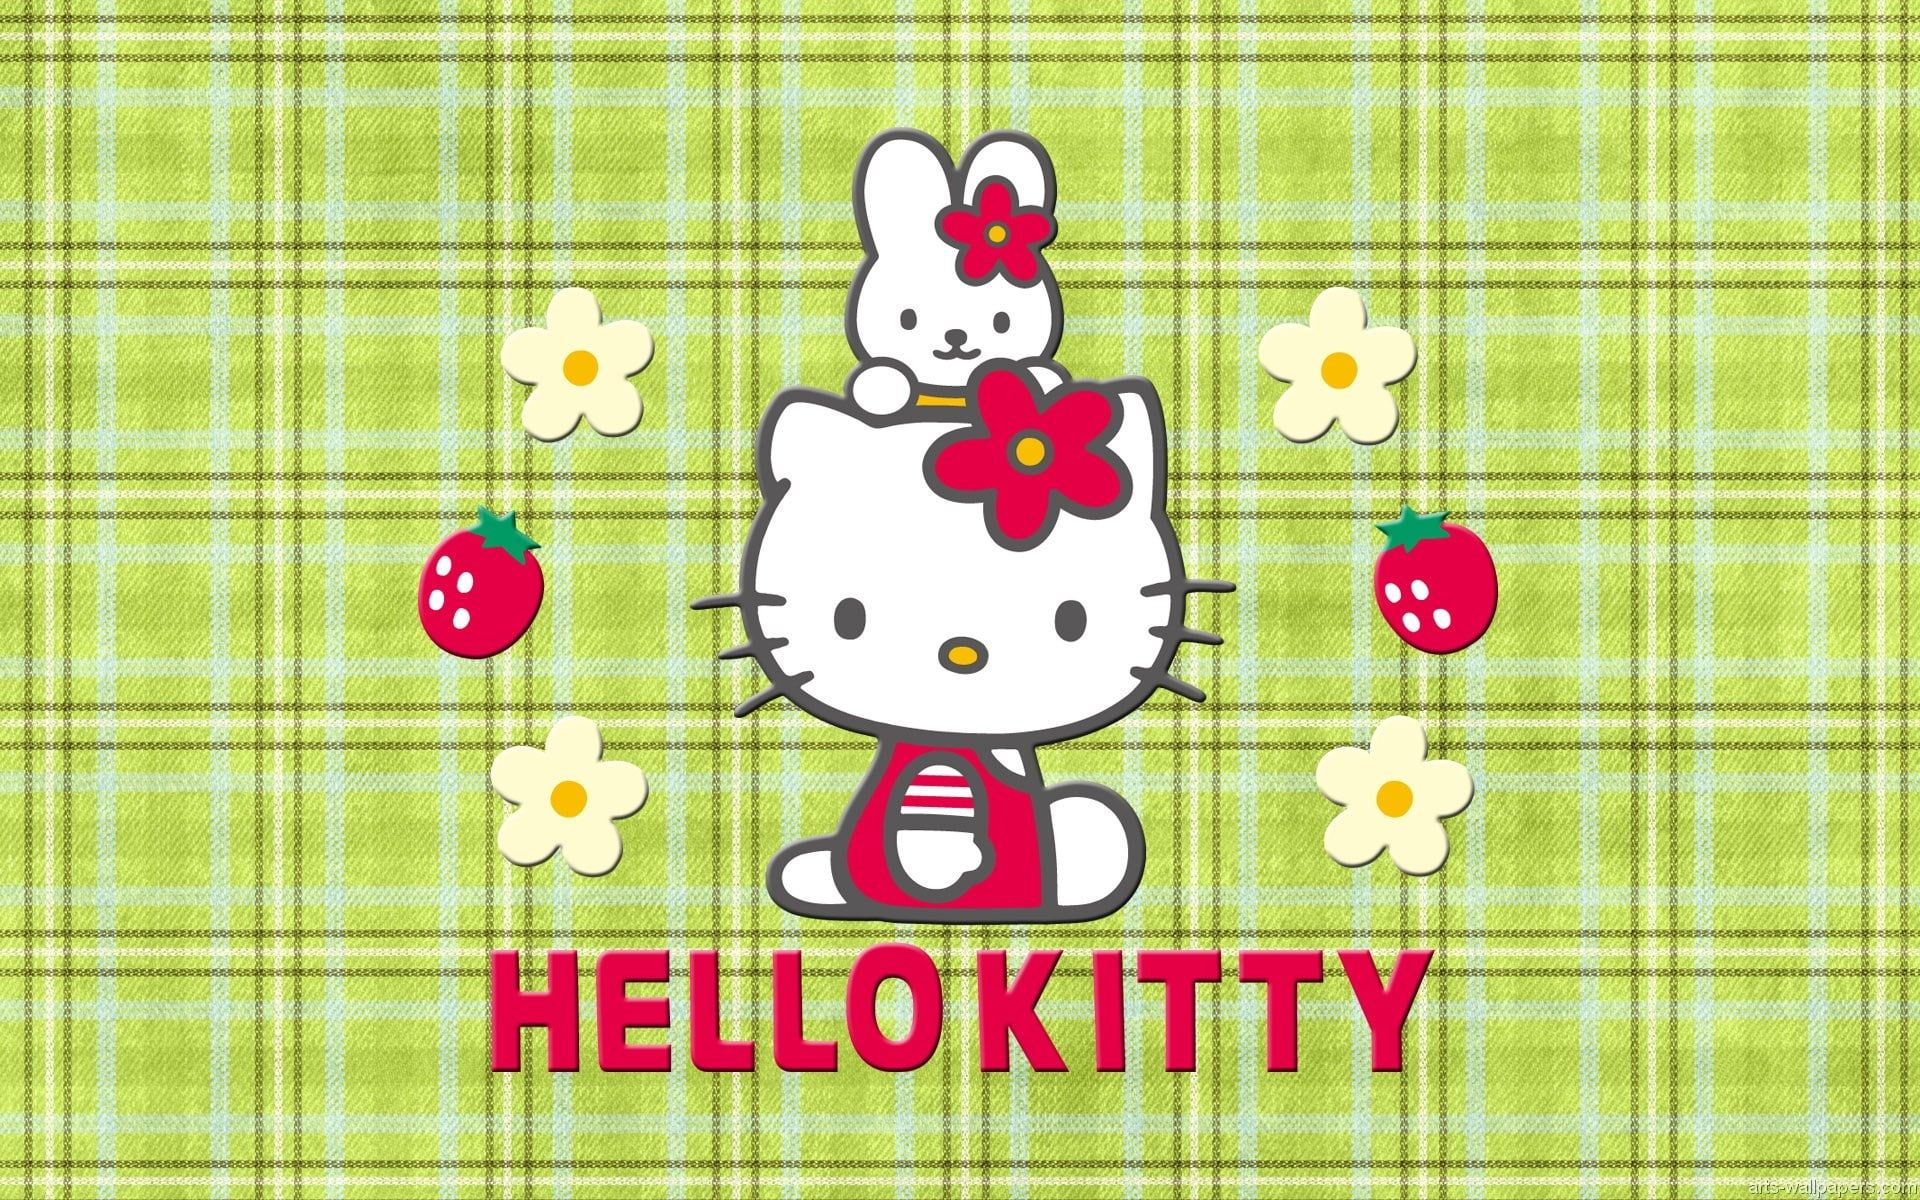 Hello Kitty Desktop Backgrounds 1080p Wallpaper Hdwallpaper Desktop Hello Kitty Iphone Wallpaper Hello Kitty Wallpaper Hello Kitty Wallpaper Hd